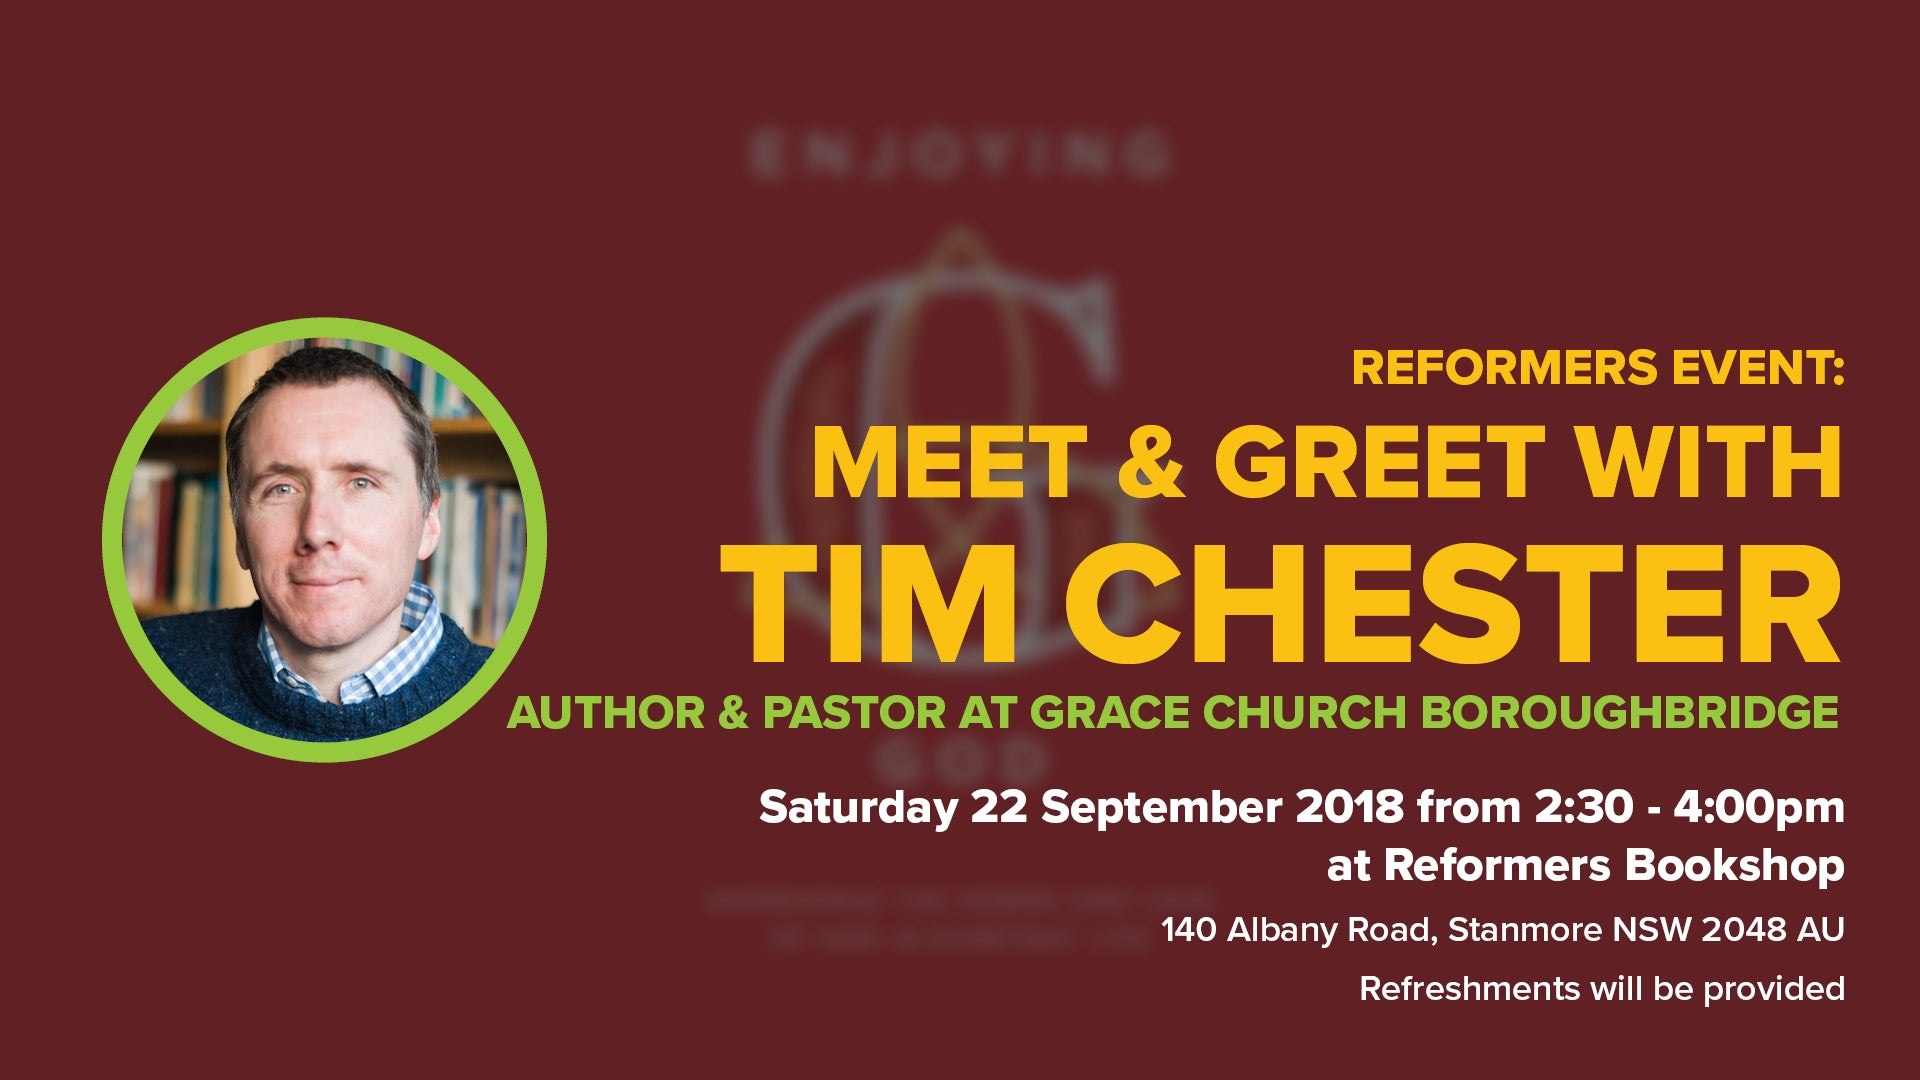 Reformers Event: Meet & Greet with Tim Chester - Author & Pastor at Grace Church Boroughbridge -- Saturday 22 September 2018 from 2:30 - 4:00pm at Reformers Bookshop, 140 Albany Road, Stanmore NSW 2048 AU. Refreshments will be provided.